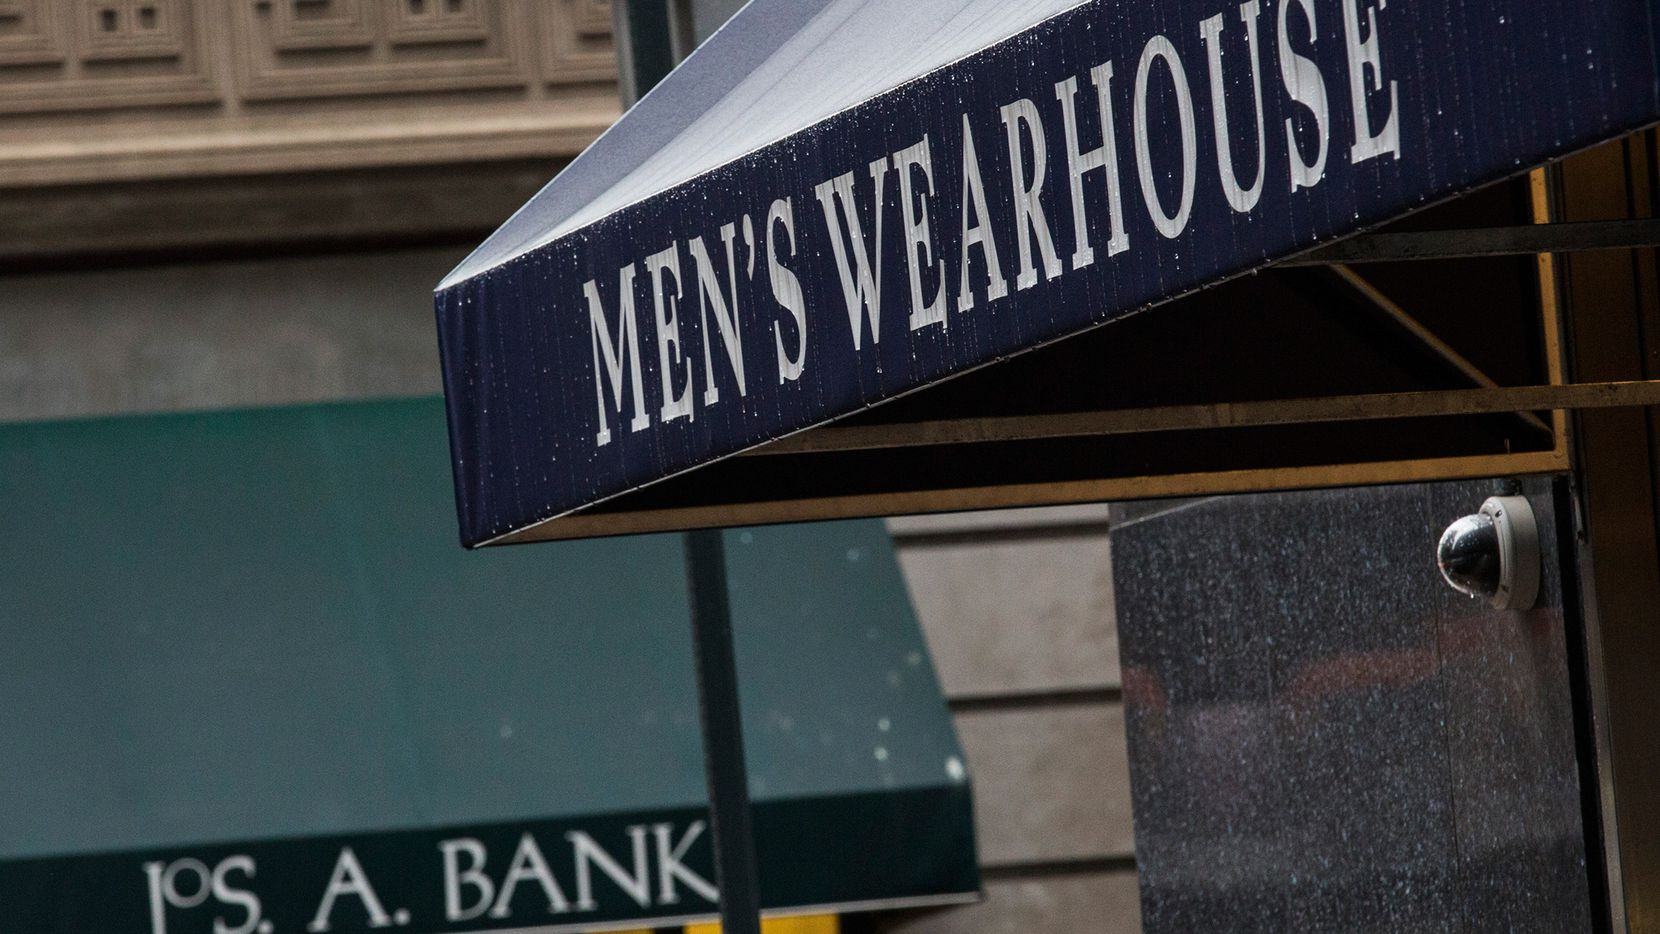 Men's Warehouse and Jos. A Bank storefronts.